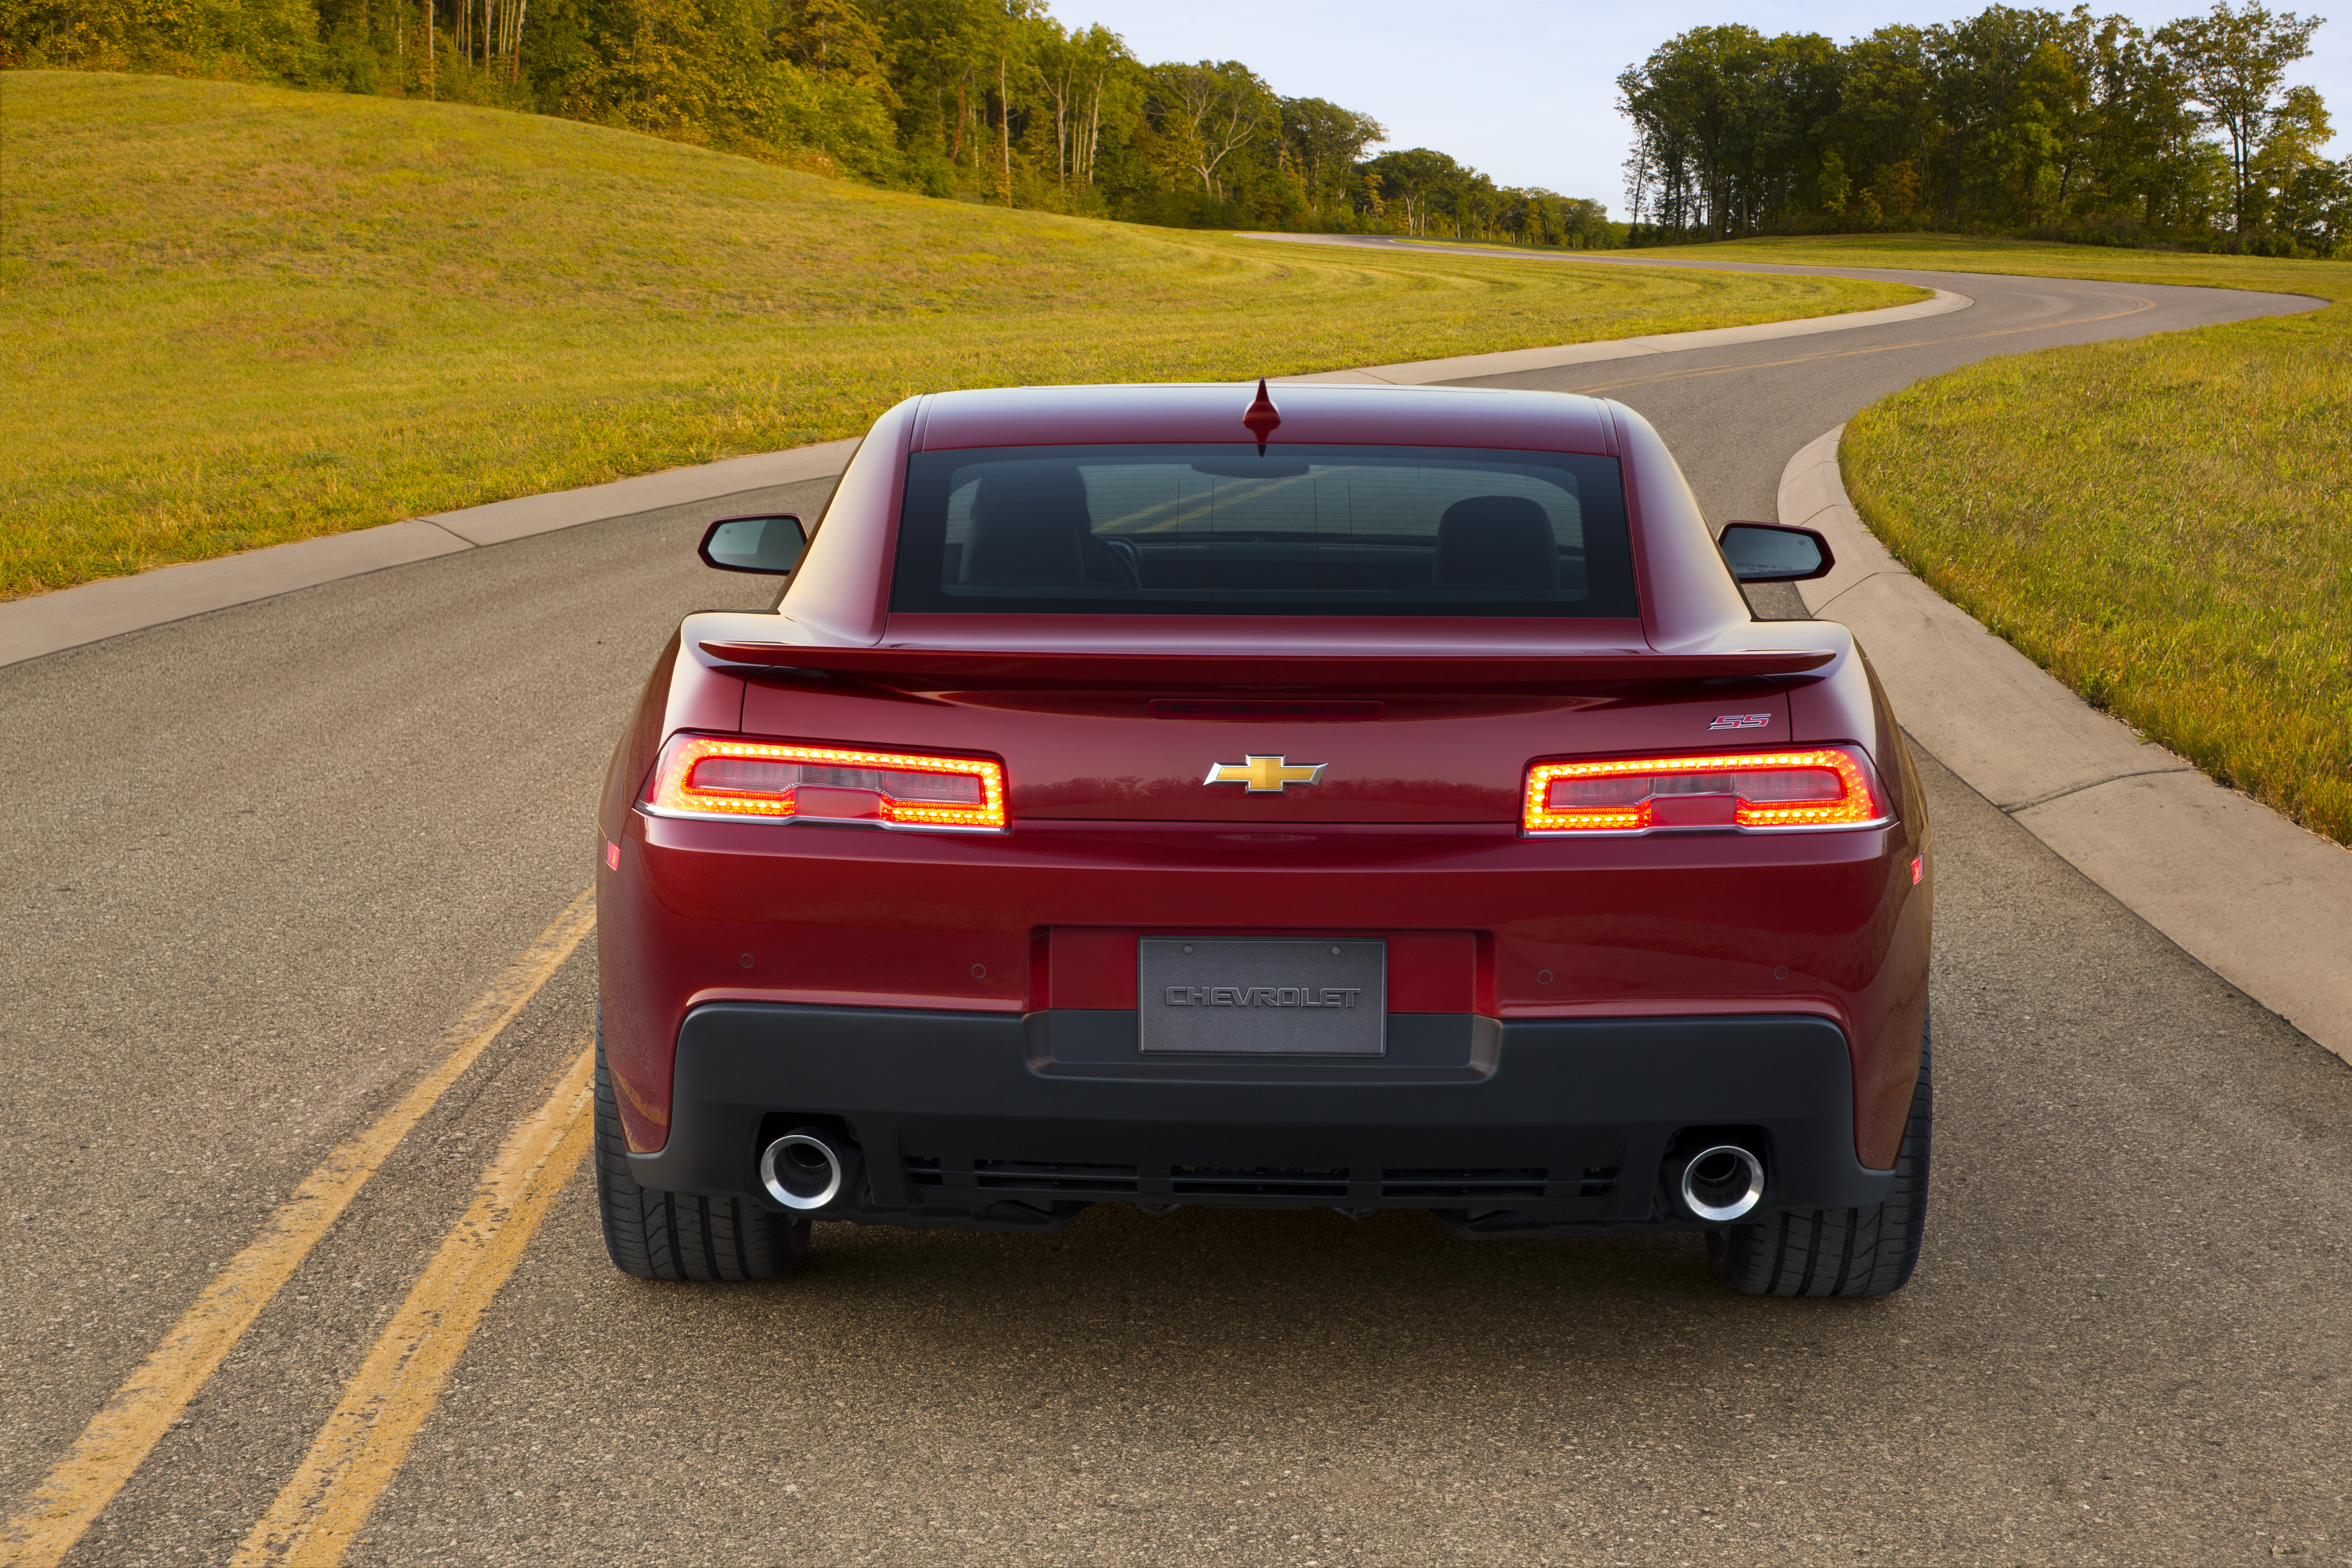 2014 - 2015 Chevrolet Camaro SS | car review @ Top Speed